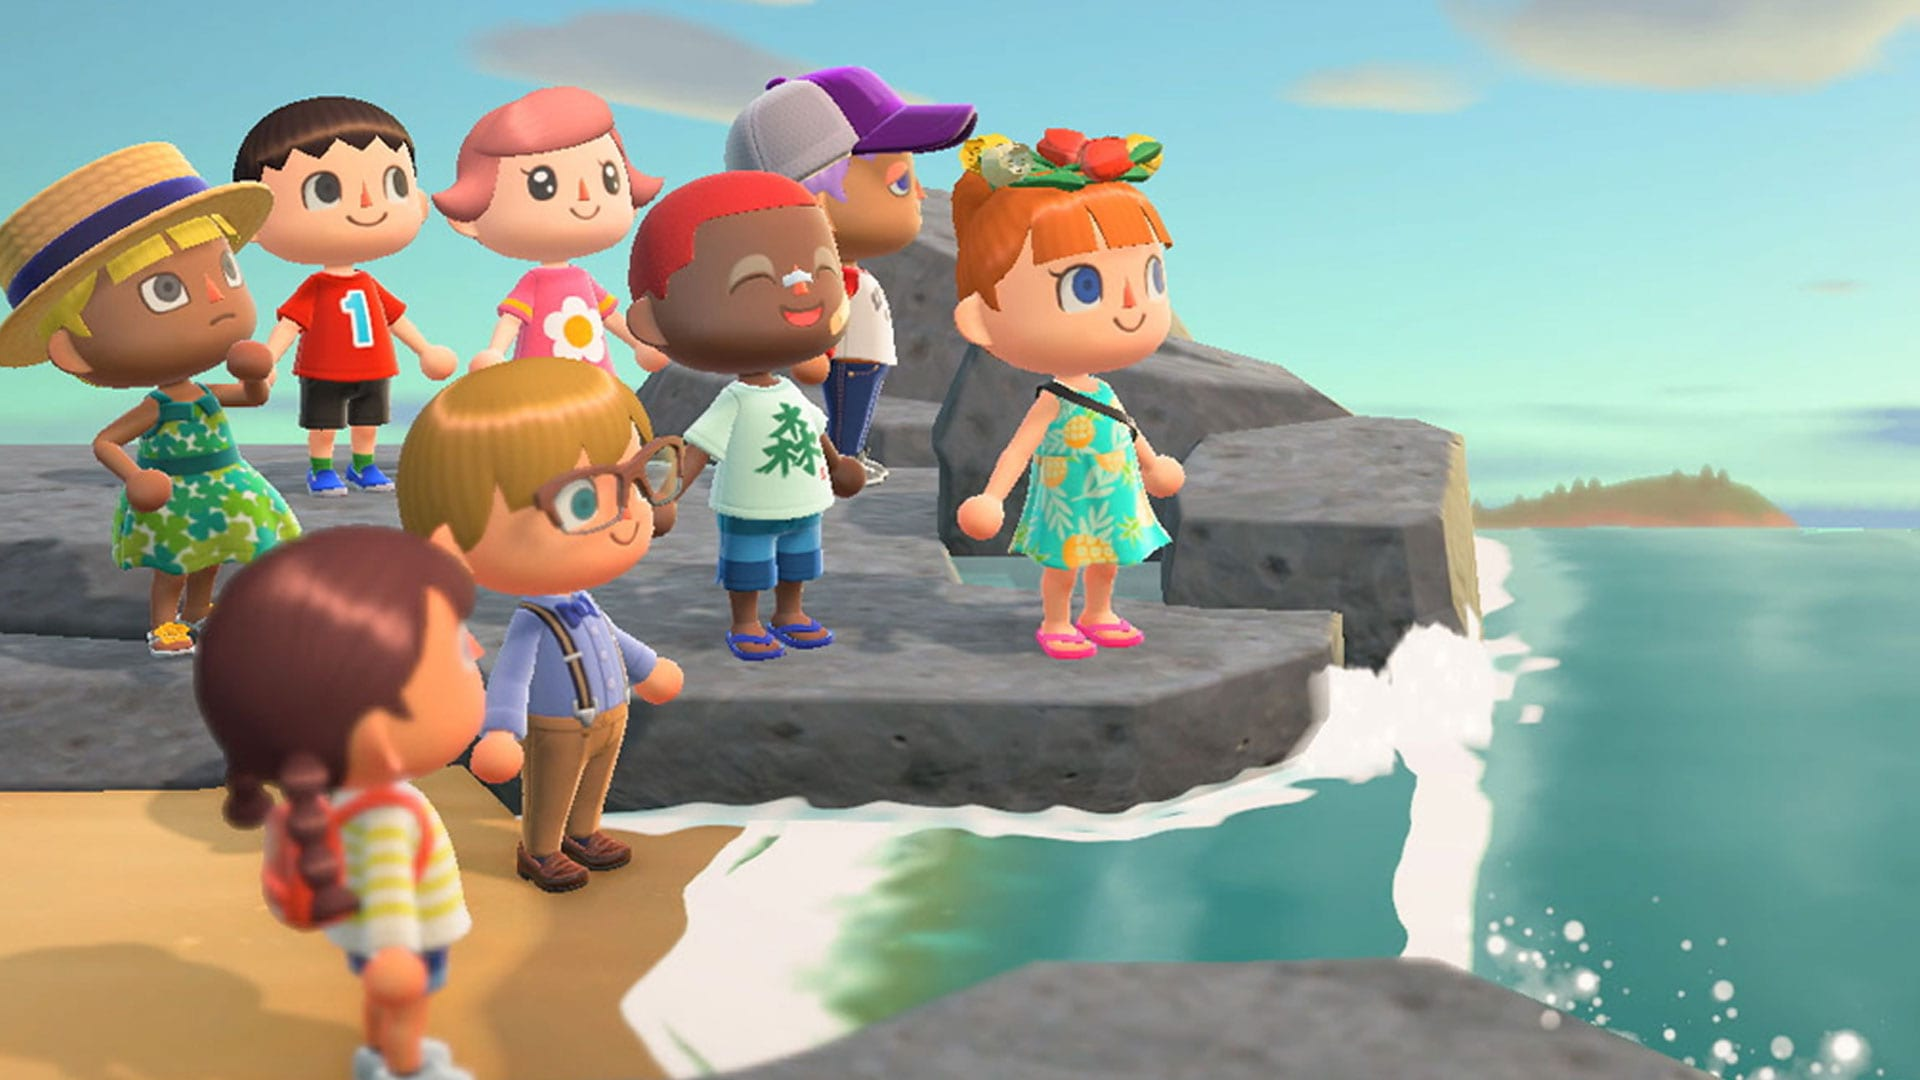 animal crossing new horizons, message in a bottle